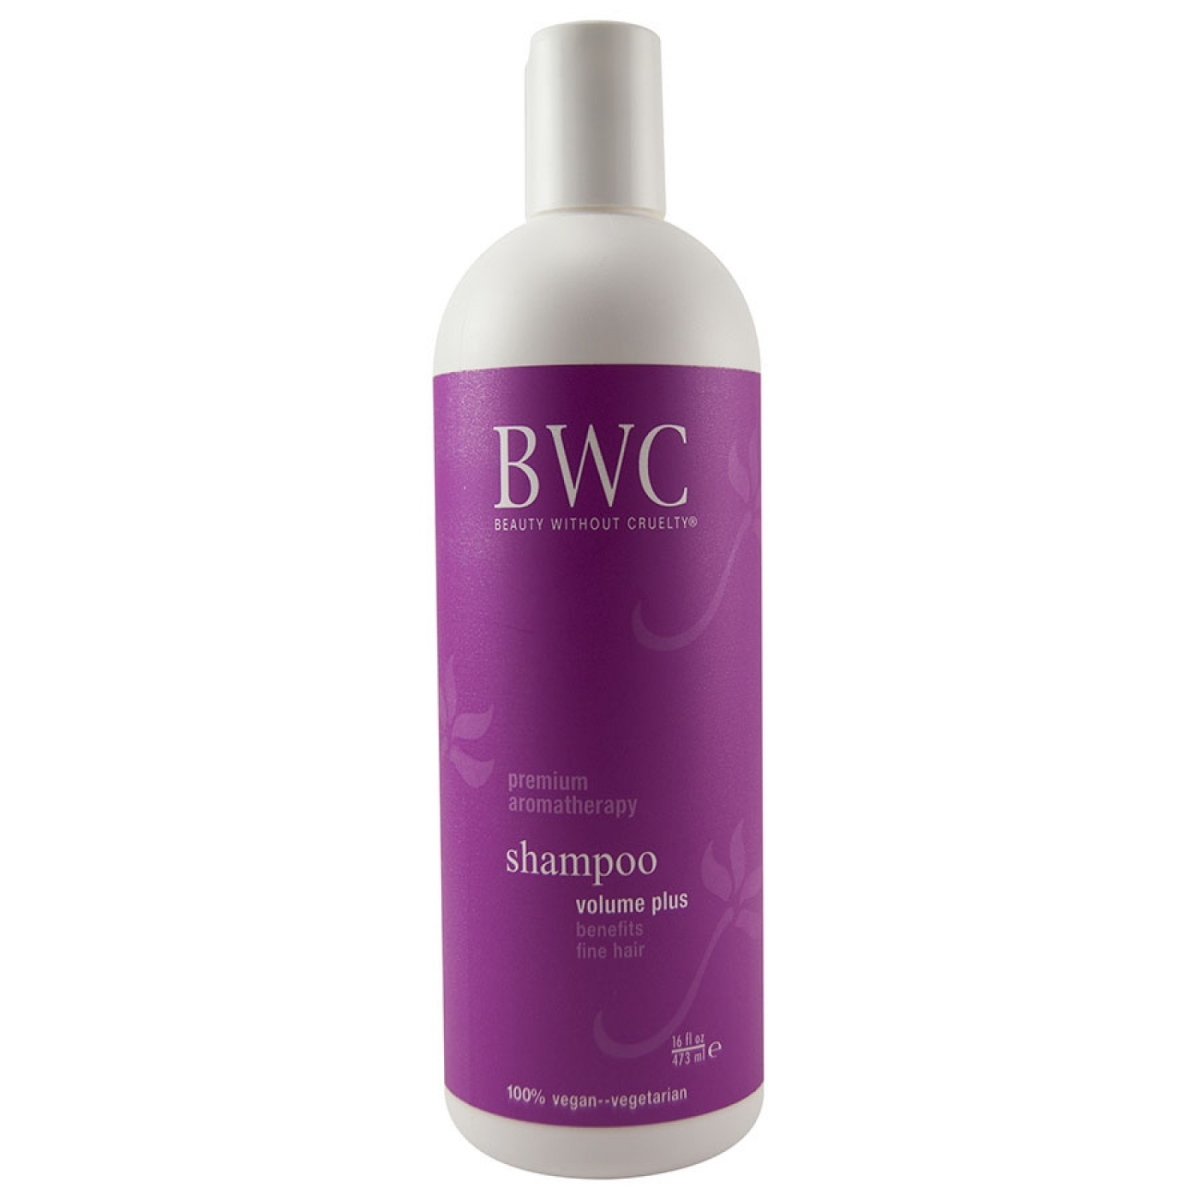 Frontier 223339 16 fl oz Beauty Without Cruelty Volume Plus Shampoo